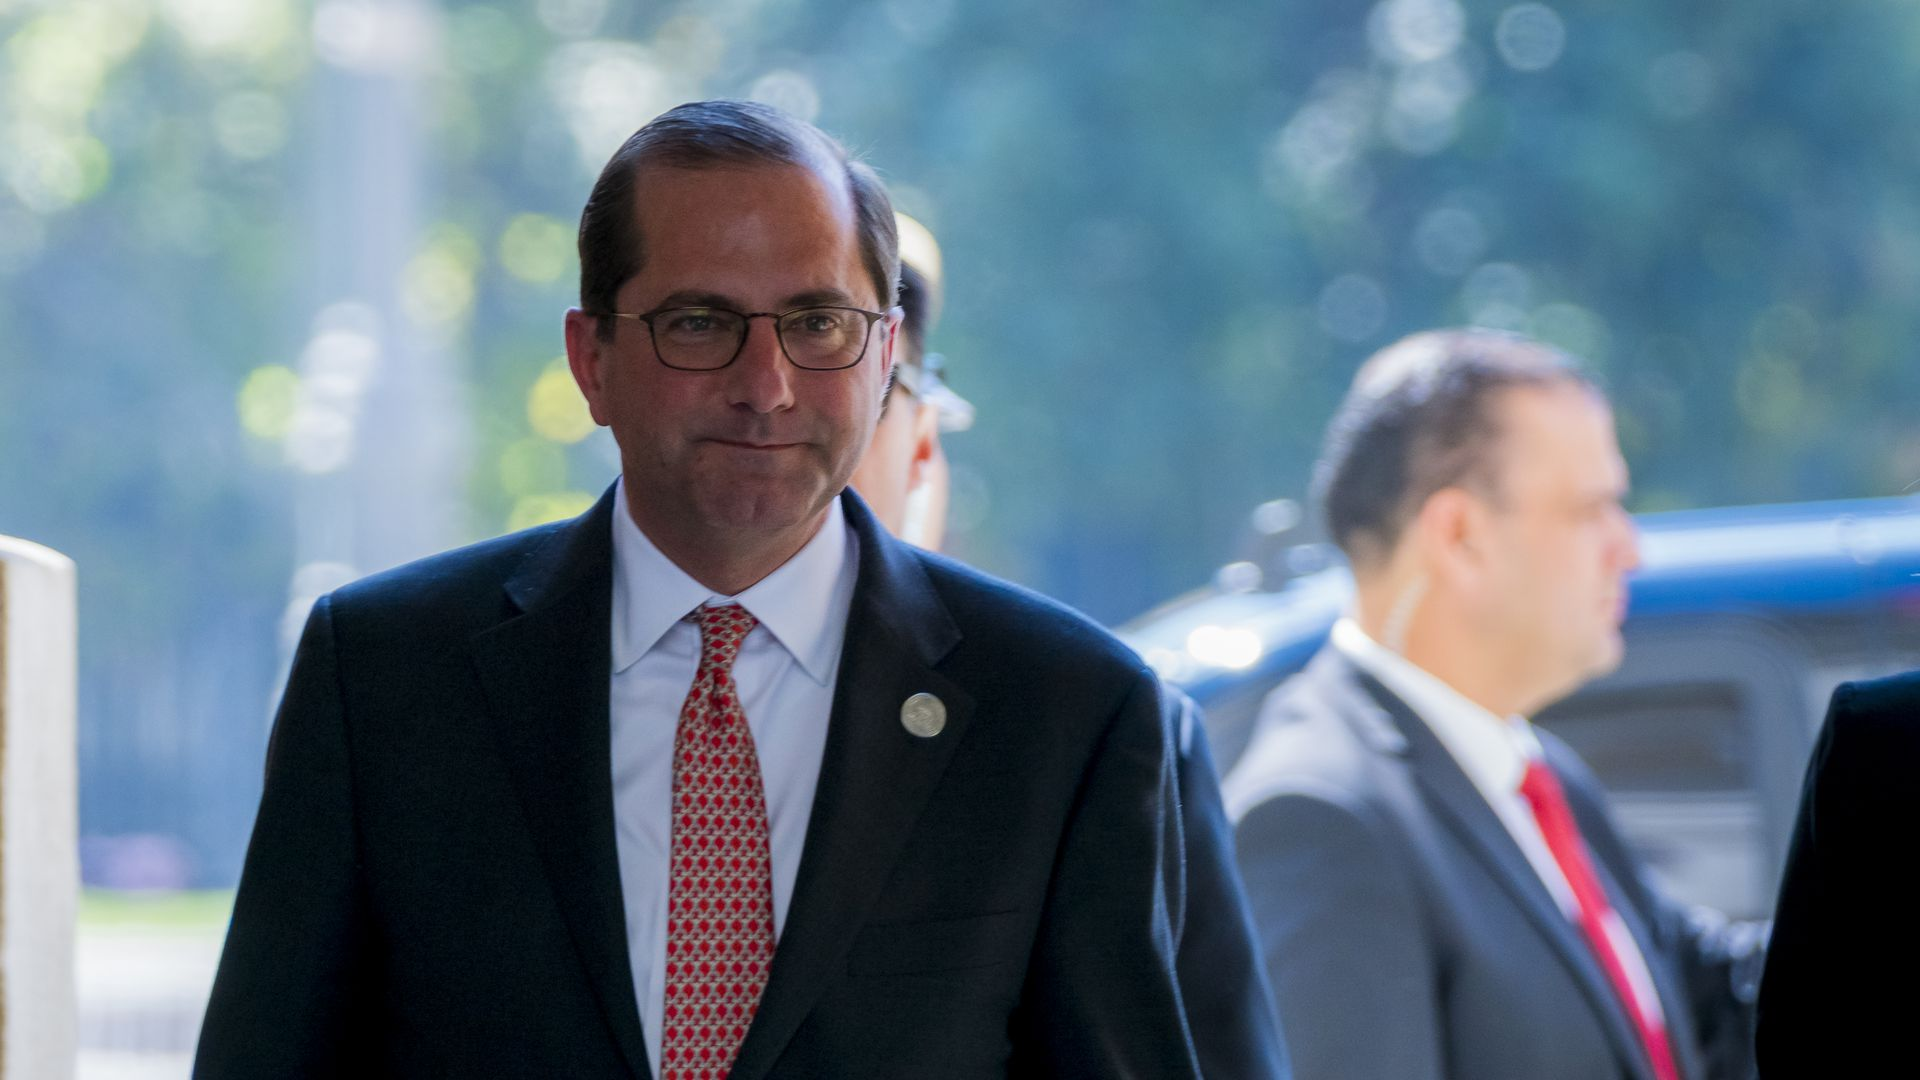 HHS Secretary Alex Azar, walking, with an expression that appears confident.